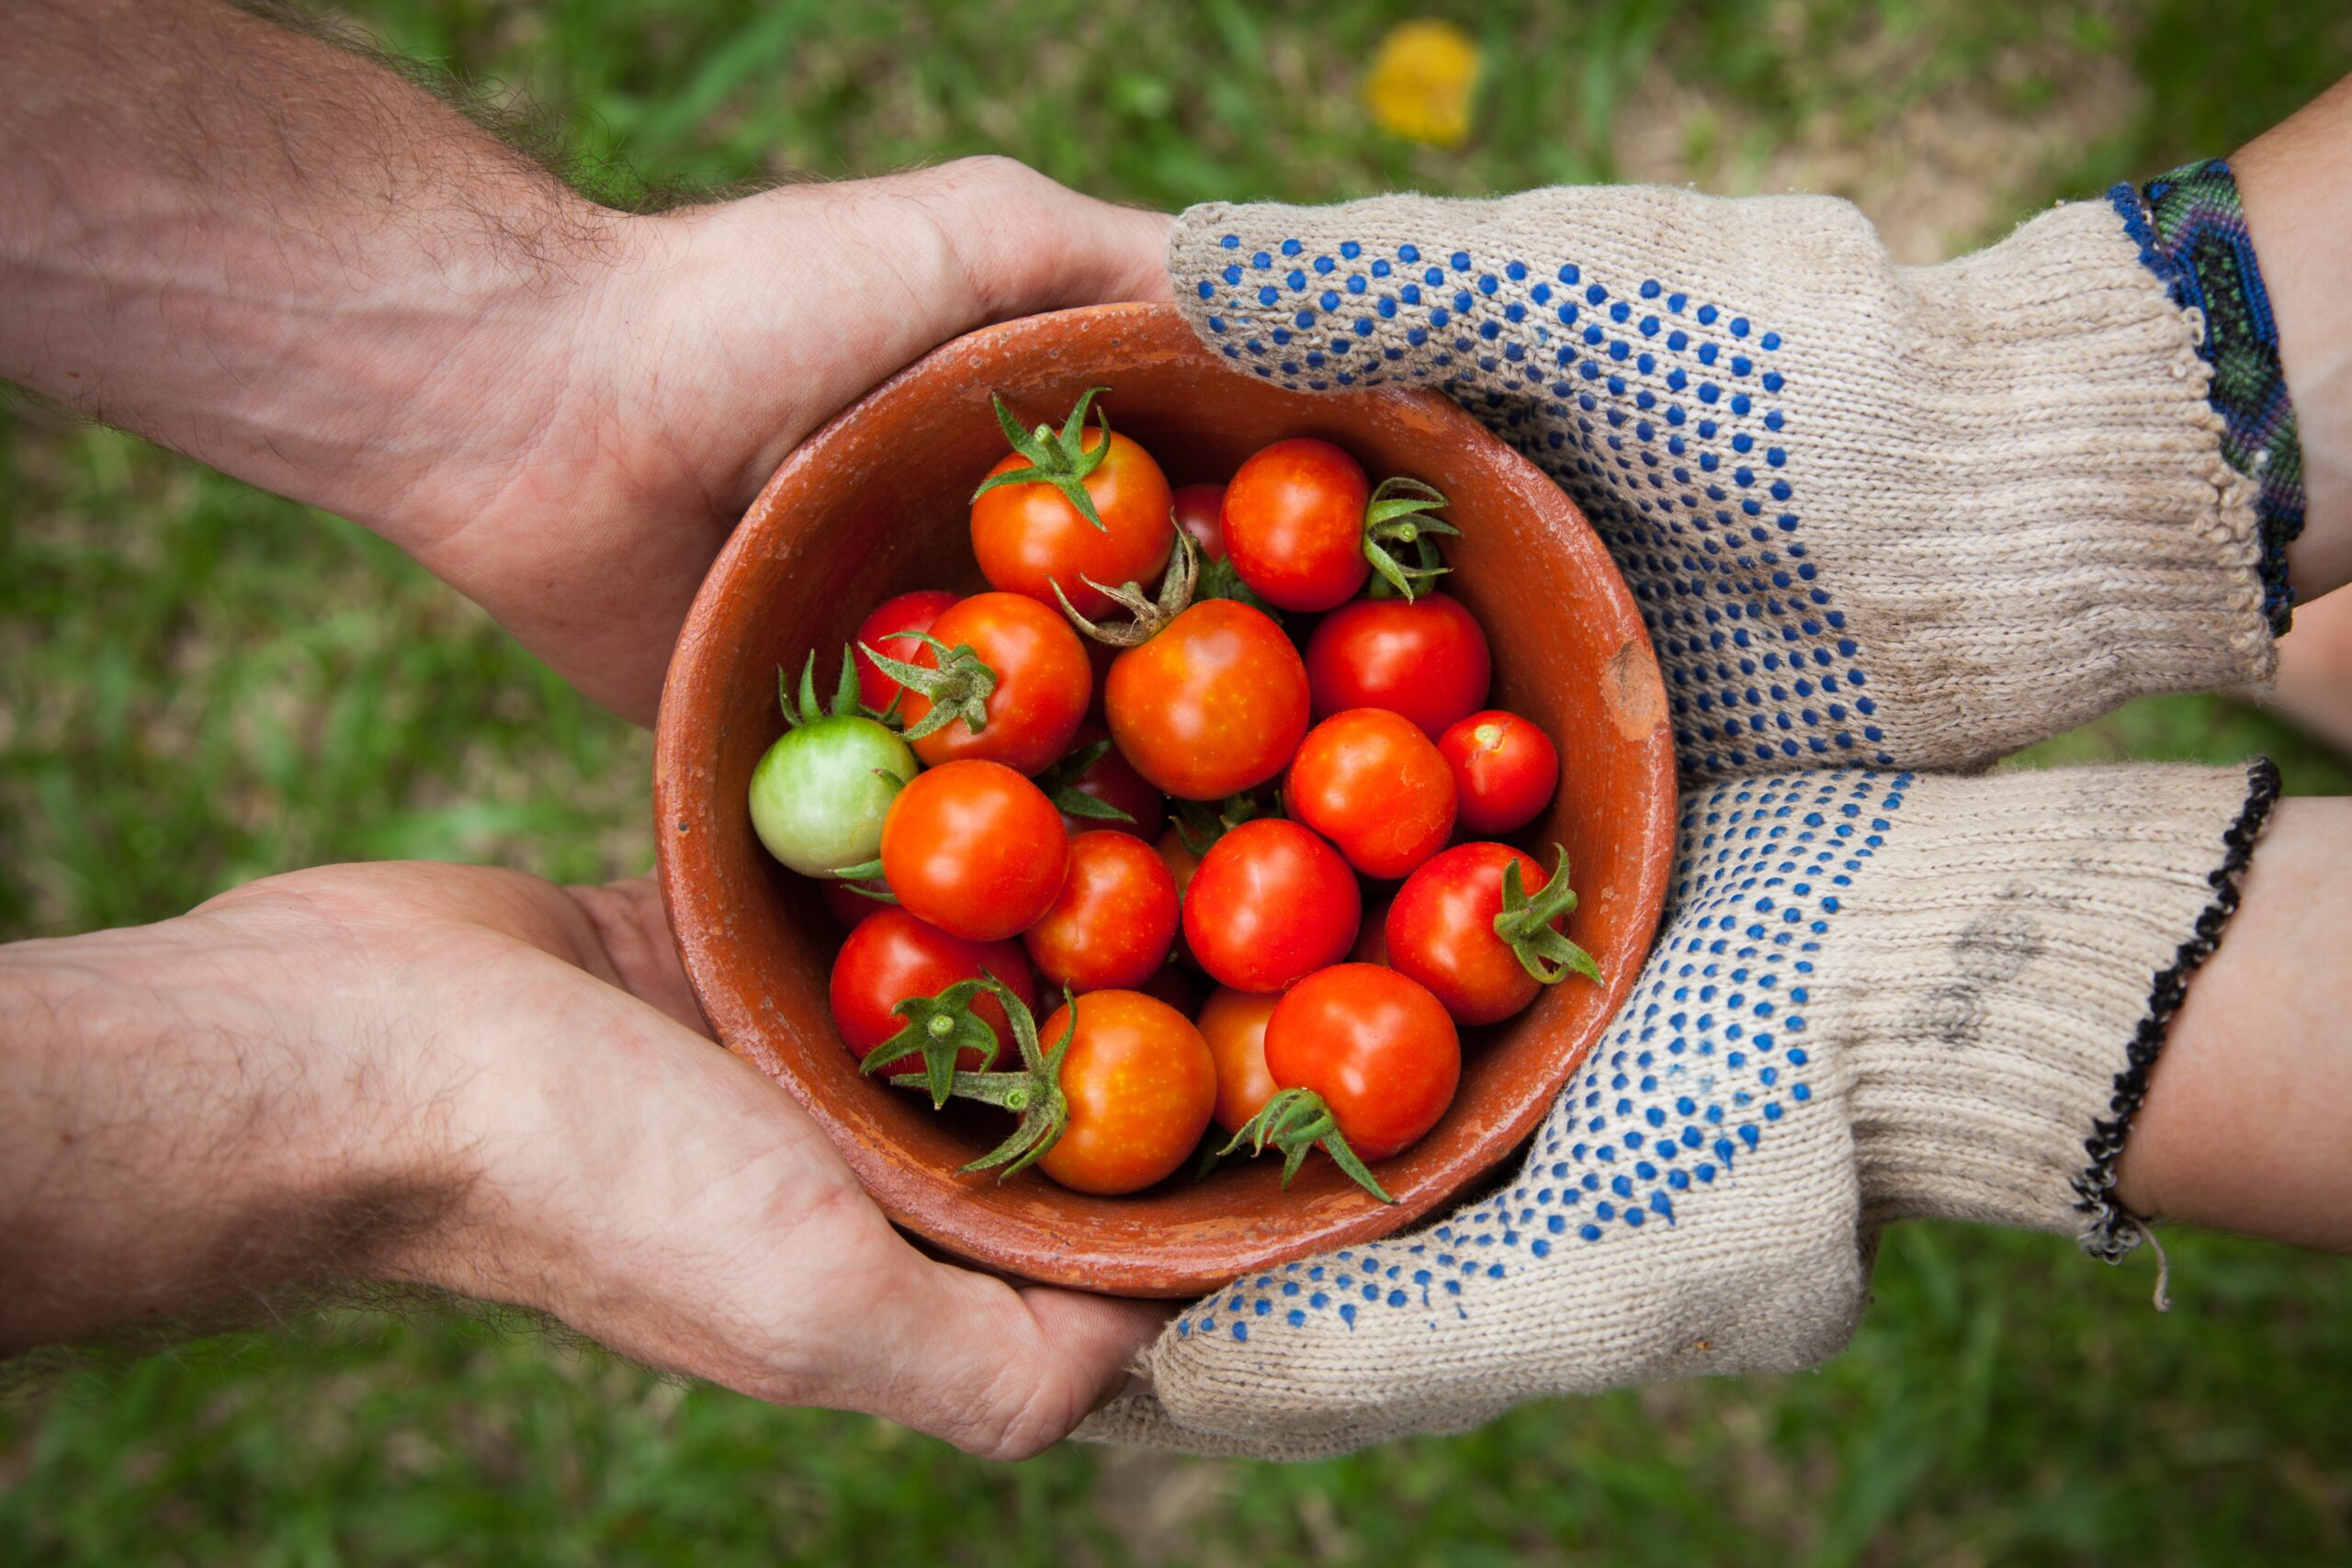 Contributing to Safe Food Production in Canada and Around the World